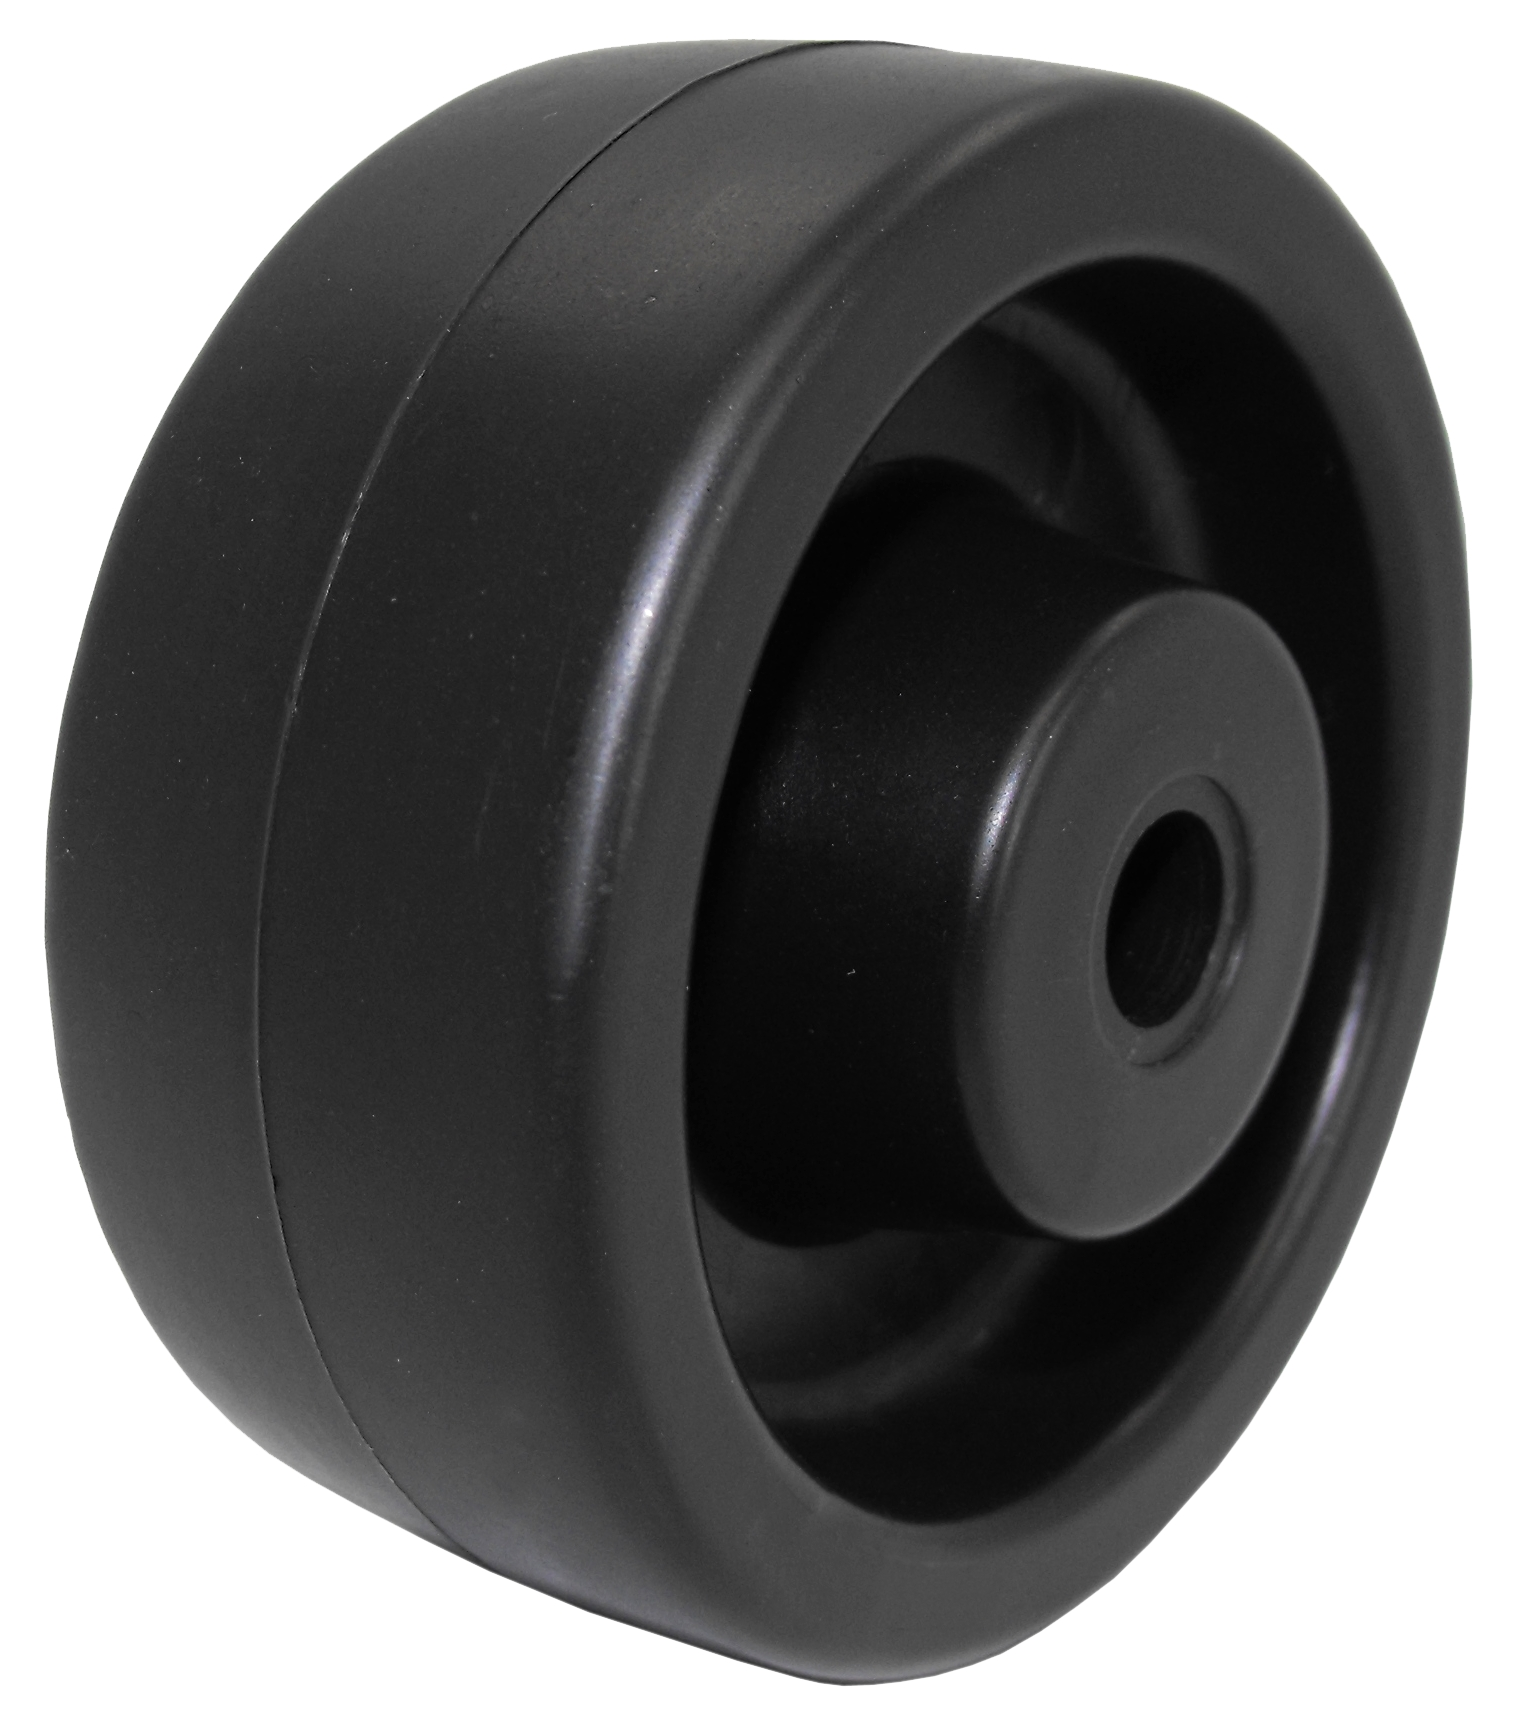 Replacement Caster Wheels parison